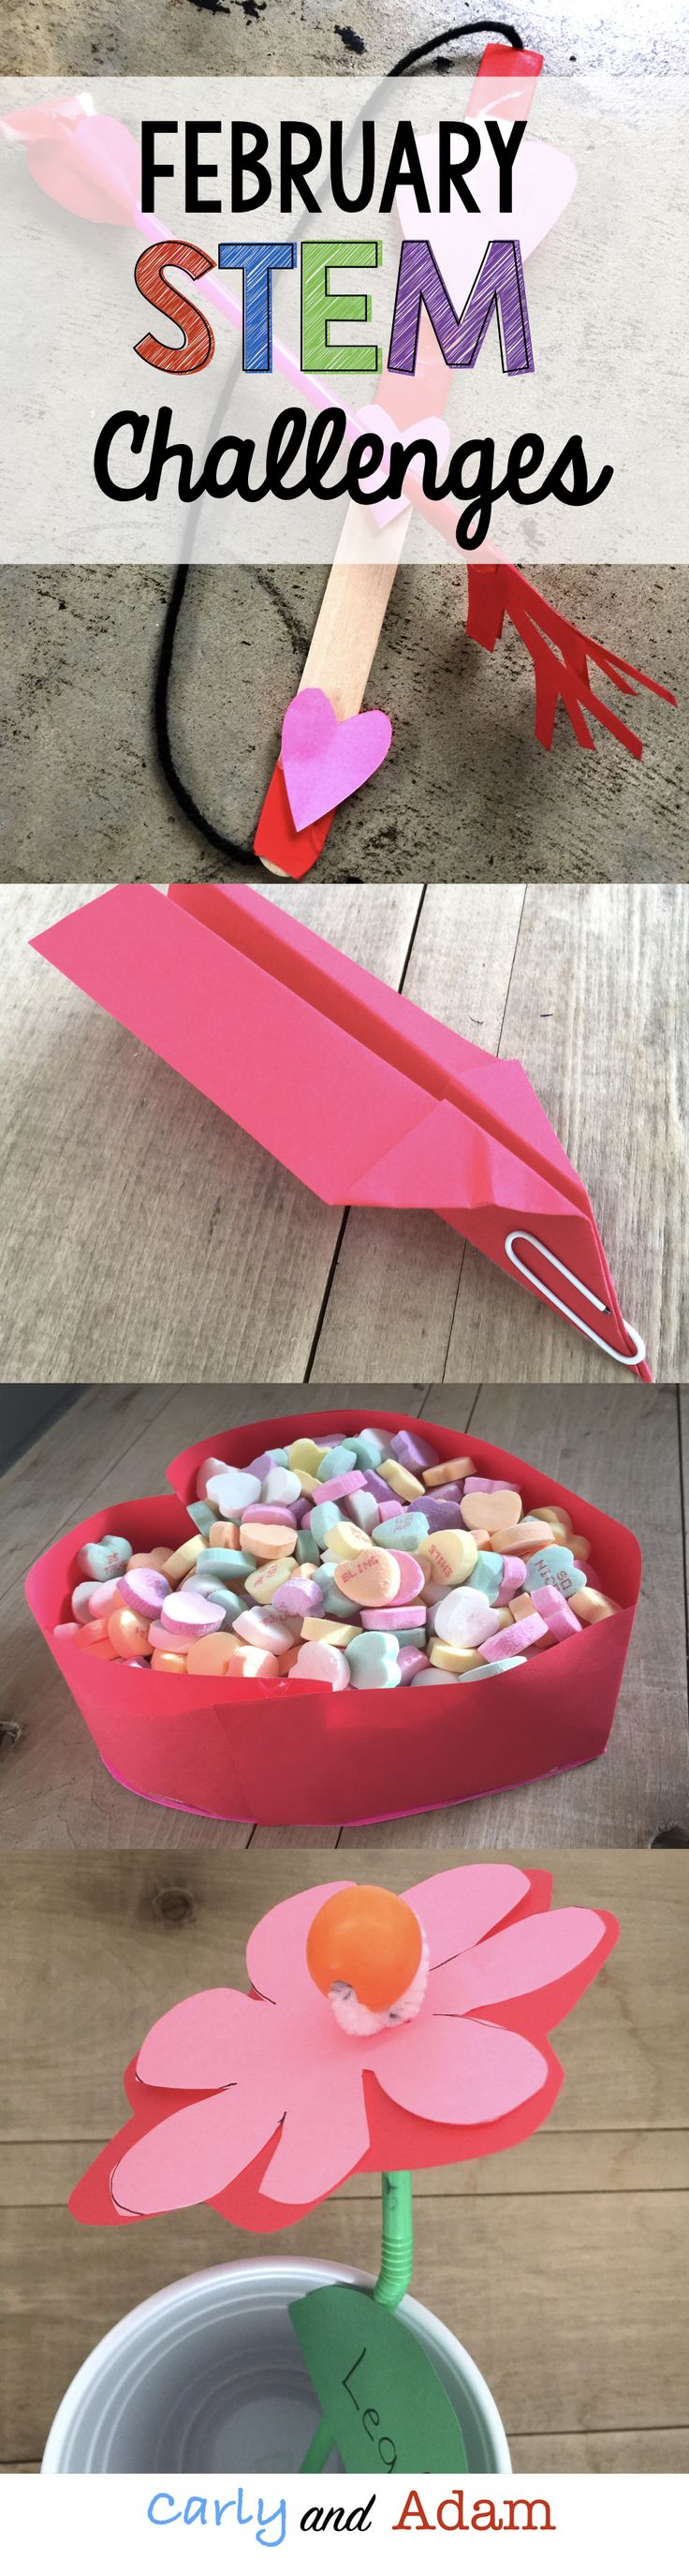 Students will complete four February Valentine's Day themed STEM Challenges. (design a bow and arrow for Cupid, design a candy box, design a paper airplane to deliver Valentine's, and design a flower)